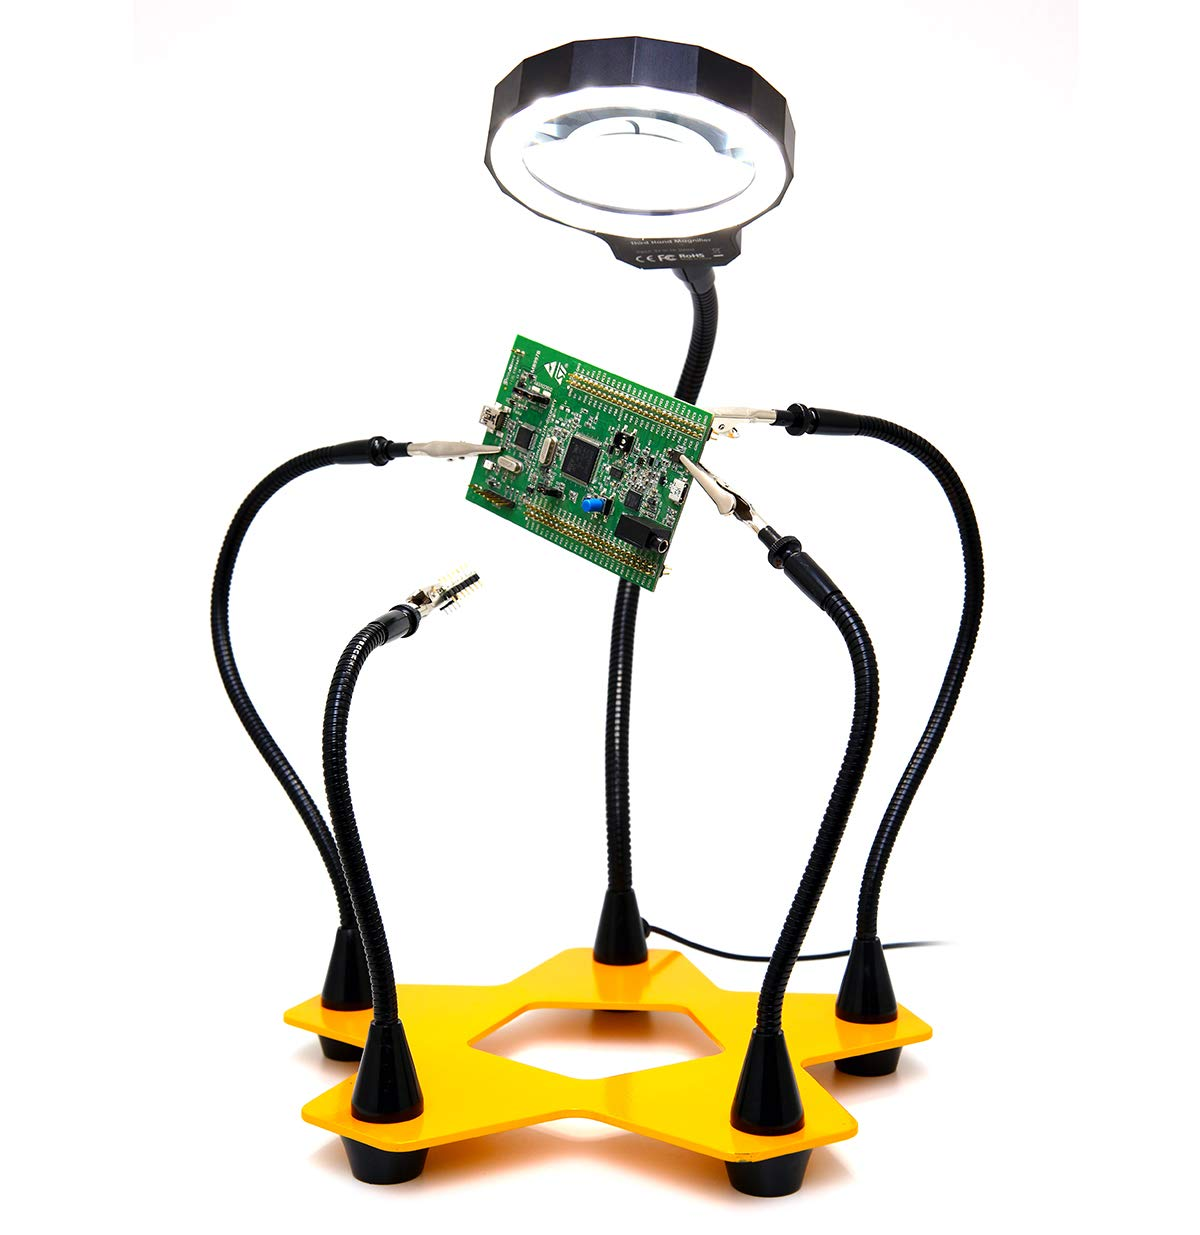 Third Hand Soldering PCB Holder Tool Quad Arms 3x LED Magnifying Helping Hands Crafts Jewelry Hobby Workshop Helping Station Non-slip Metal weighted base